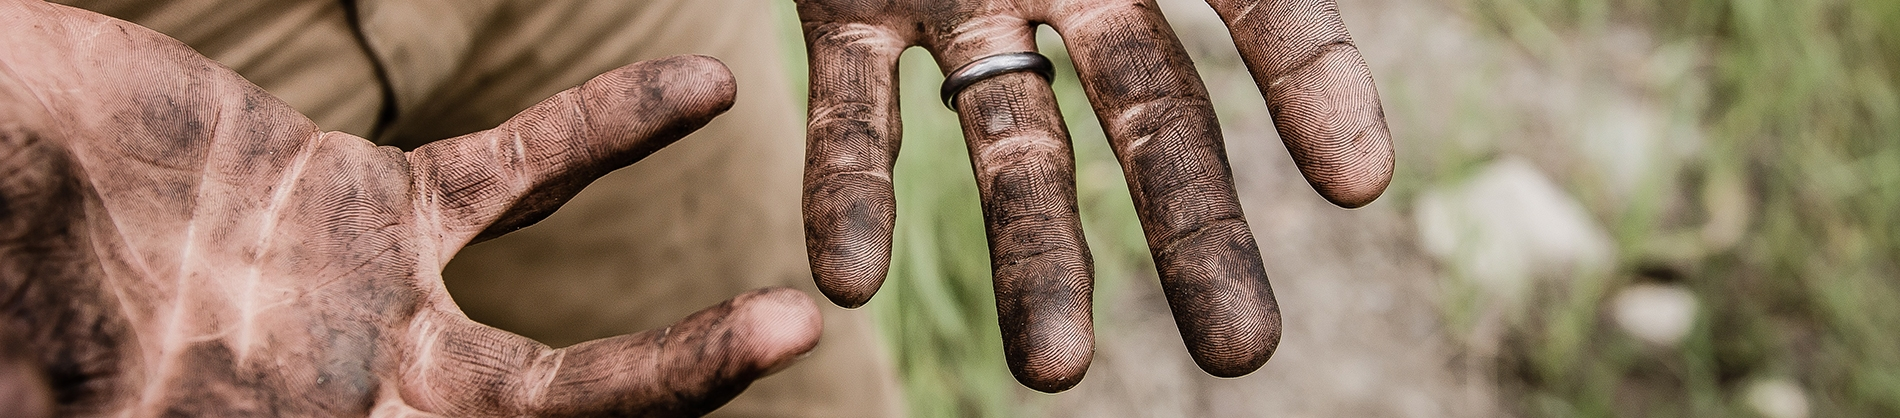 A man with dirt on his hands